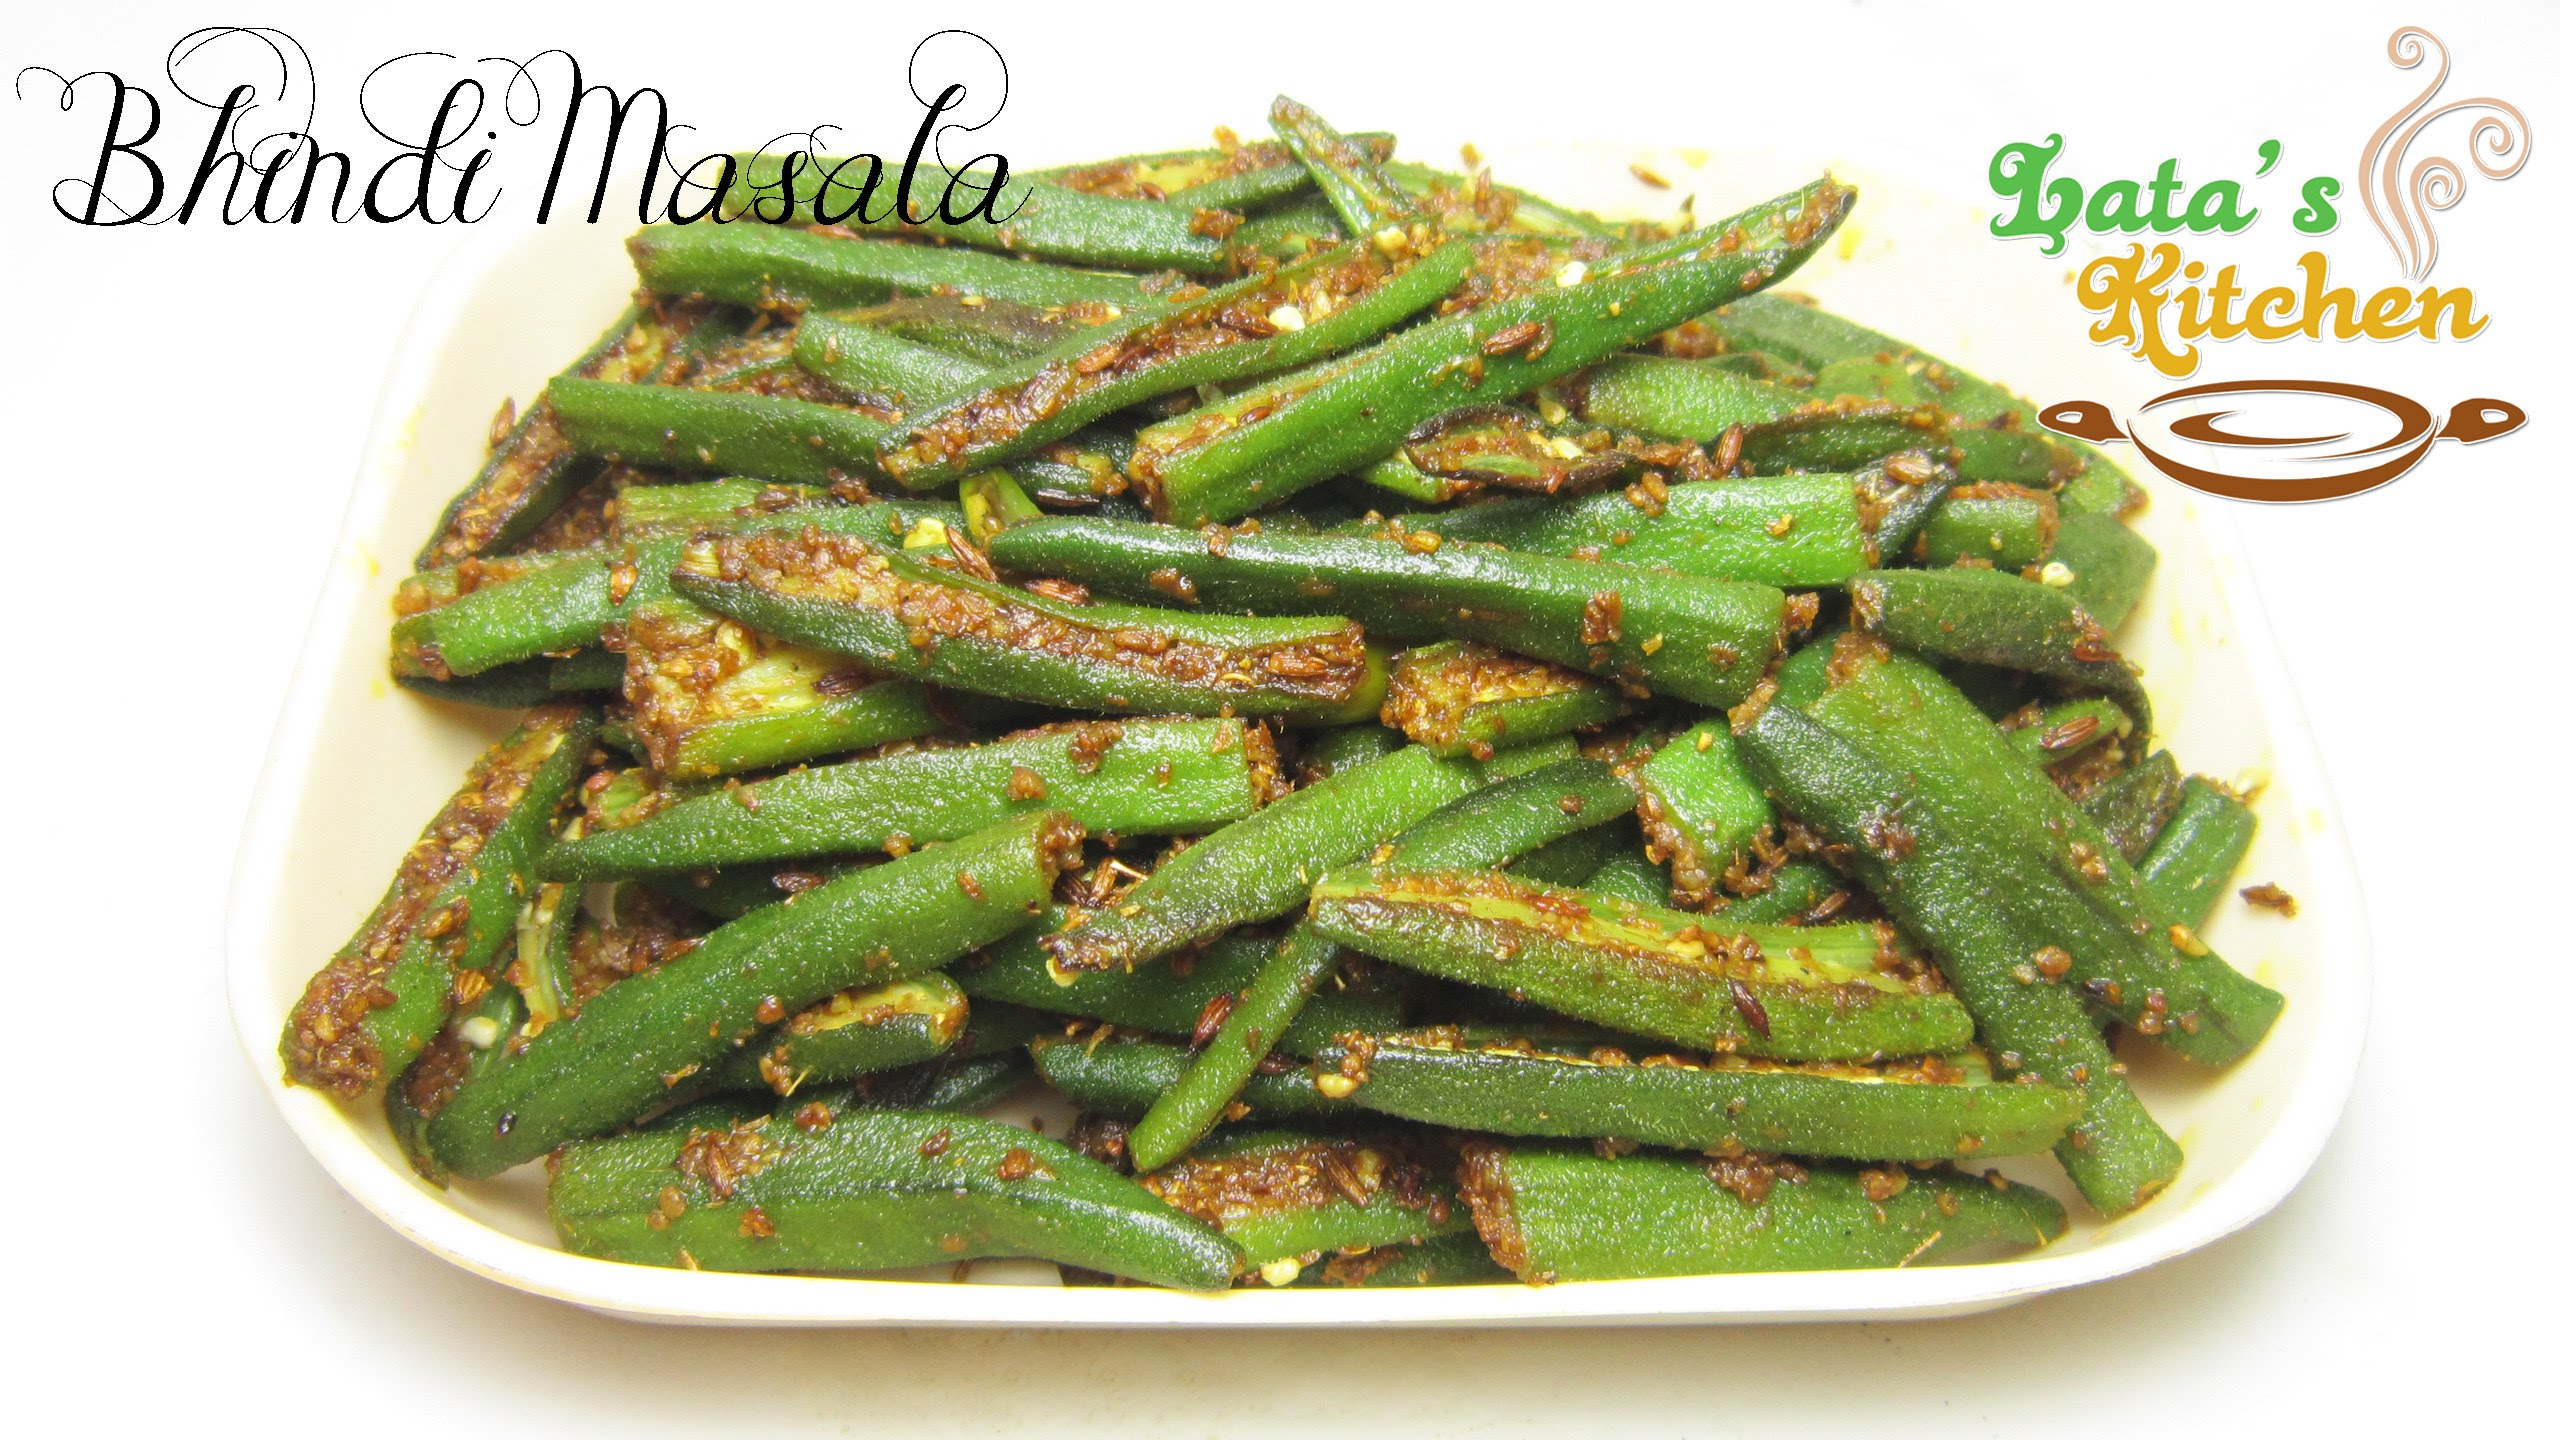 Bhindi masala recipe okra masala indian vegetarian recipe in bhindi masala recipe okra masala indian vegetarian recipe in hindi with english subtitles video perfectlifestylefo news for a perfect life forumfinder